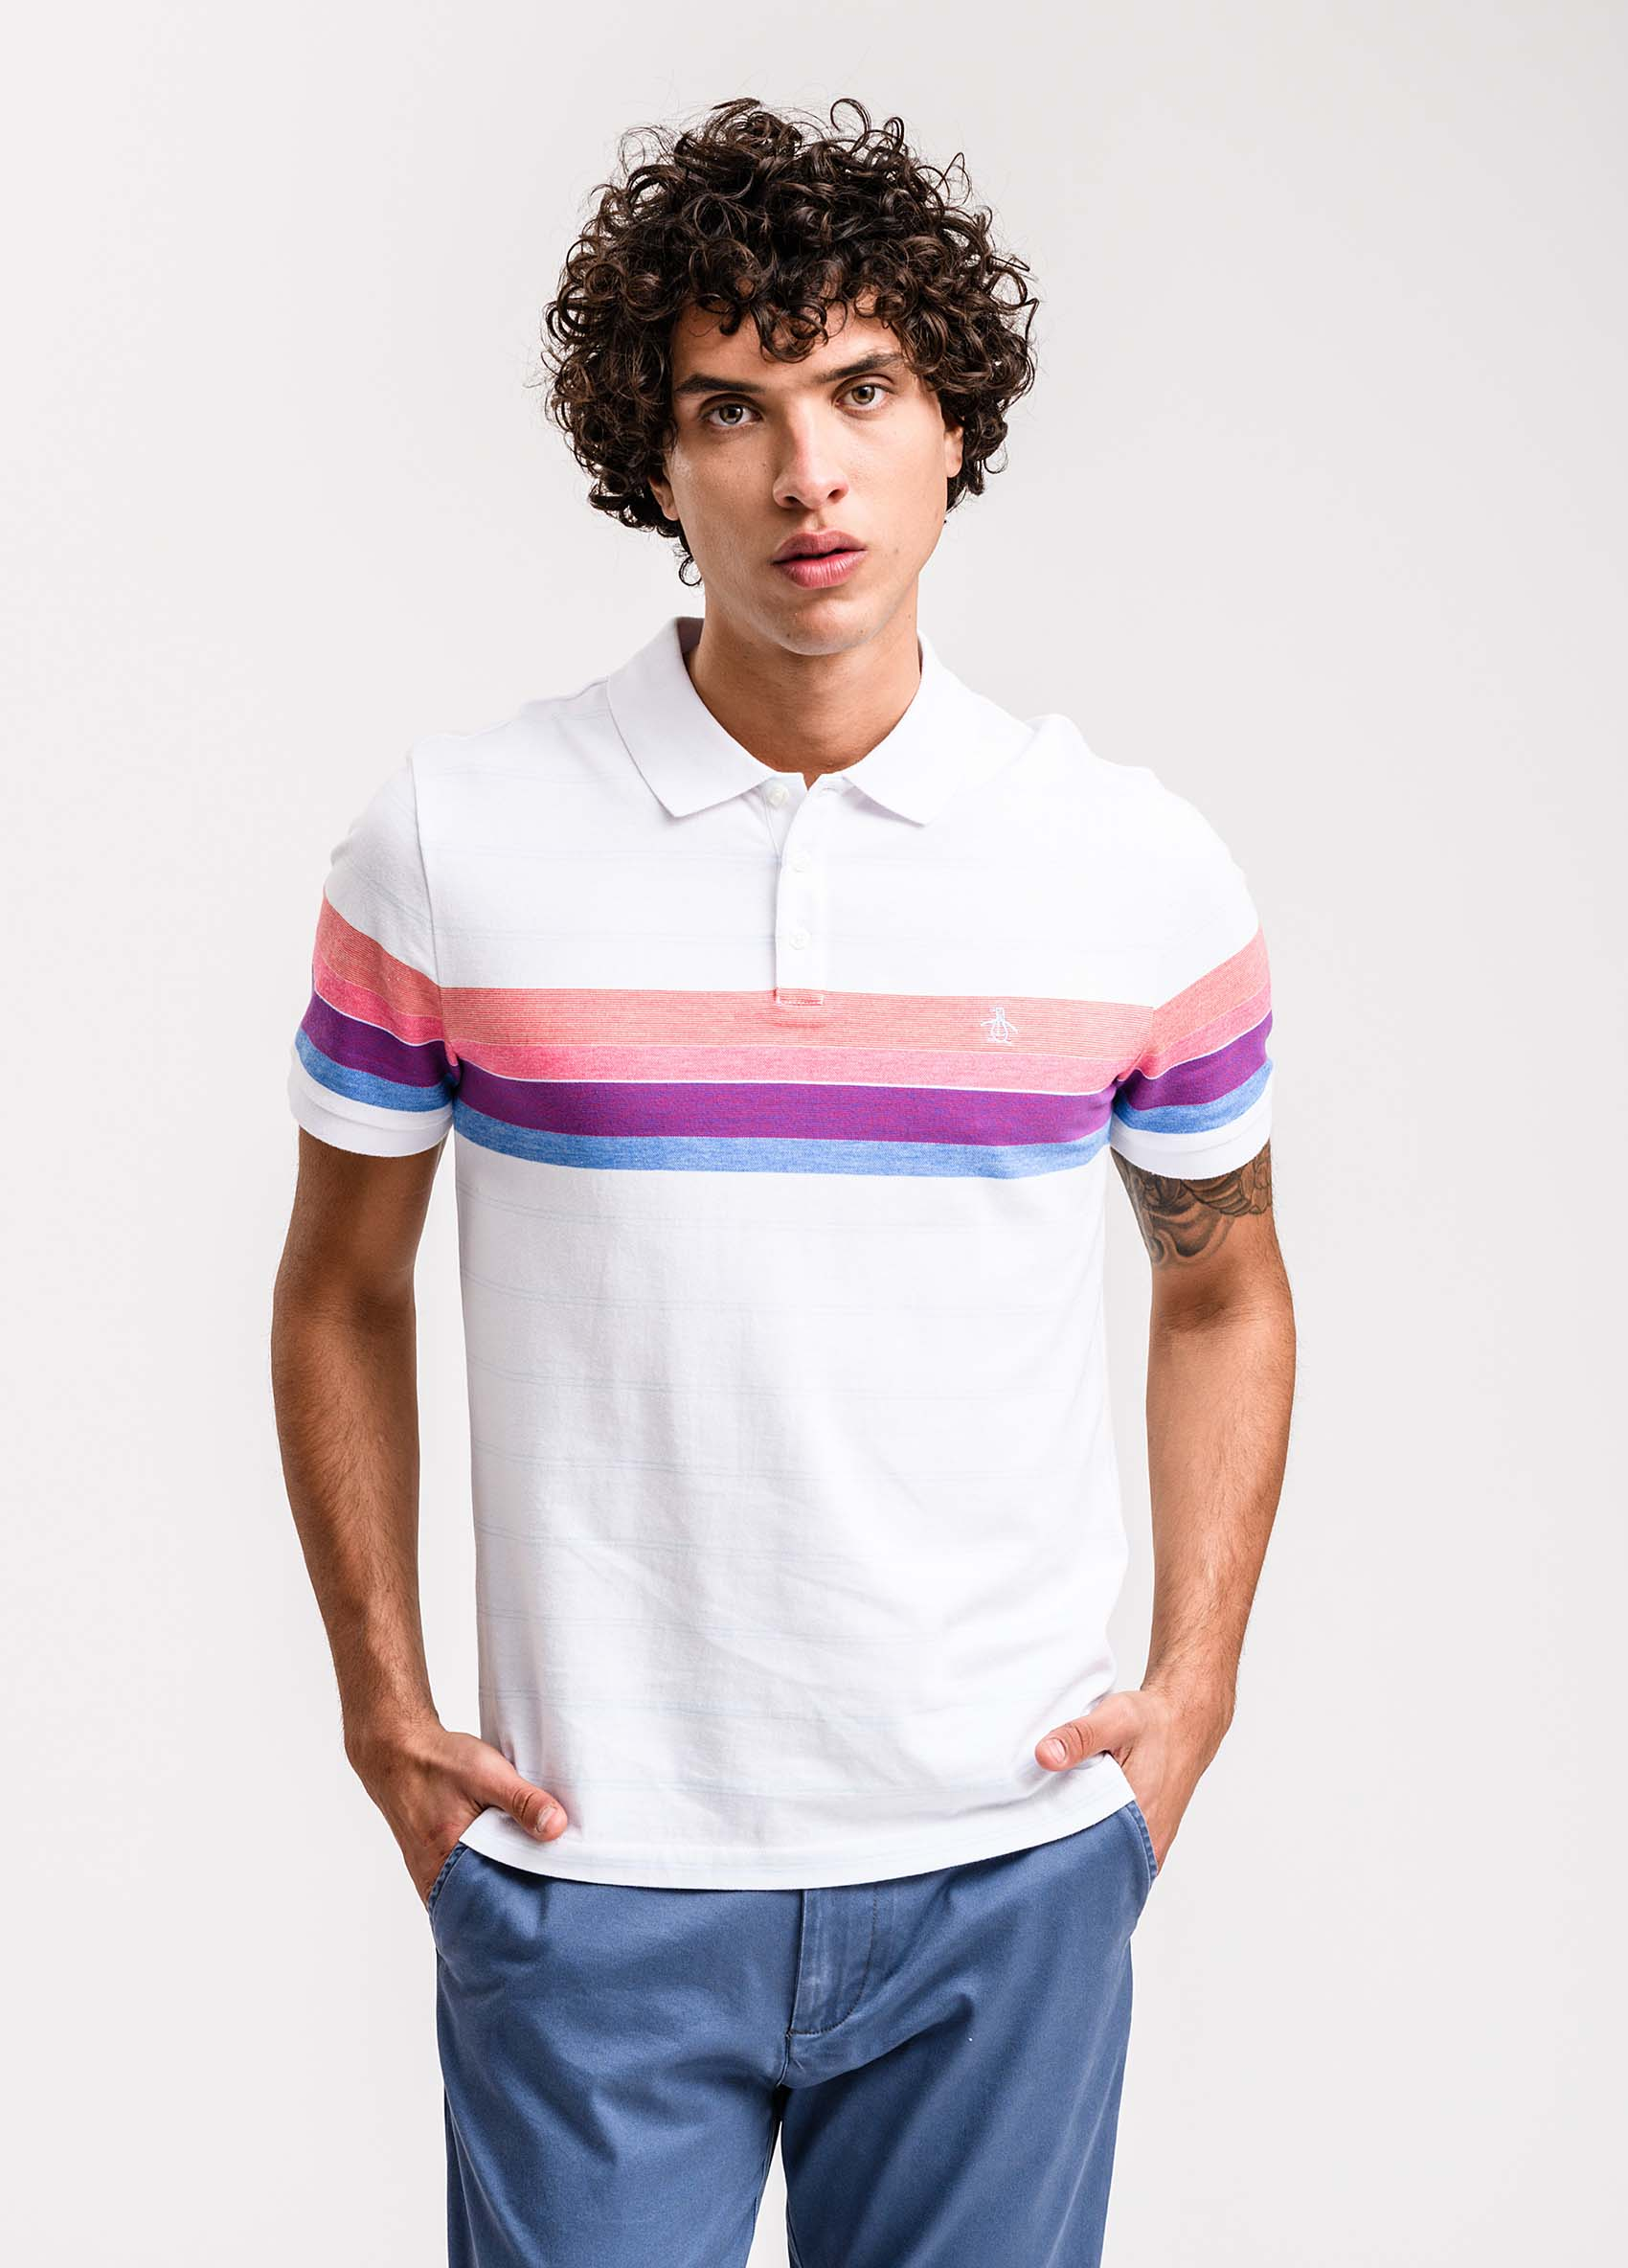 penguin_ss-engineered-rainbow-stripe-polo_29-26-2018__picture-1771